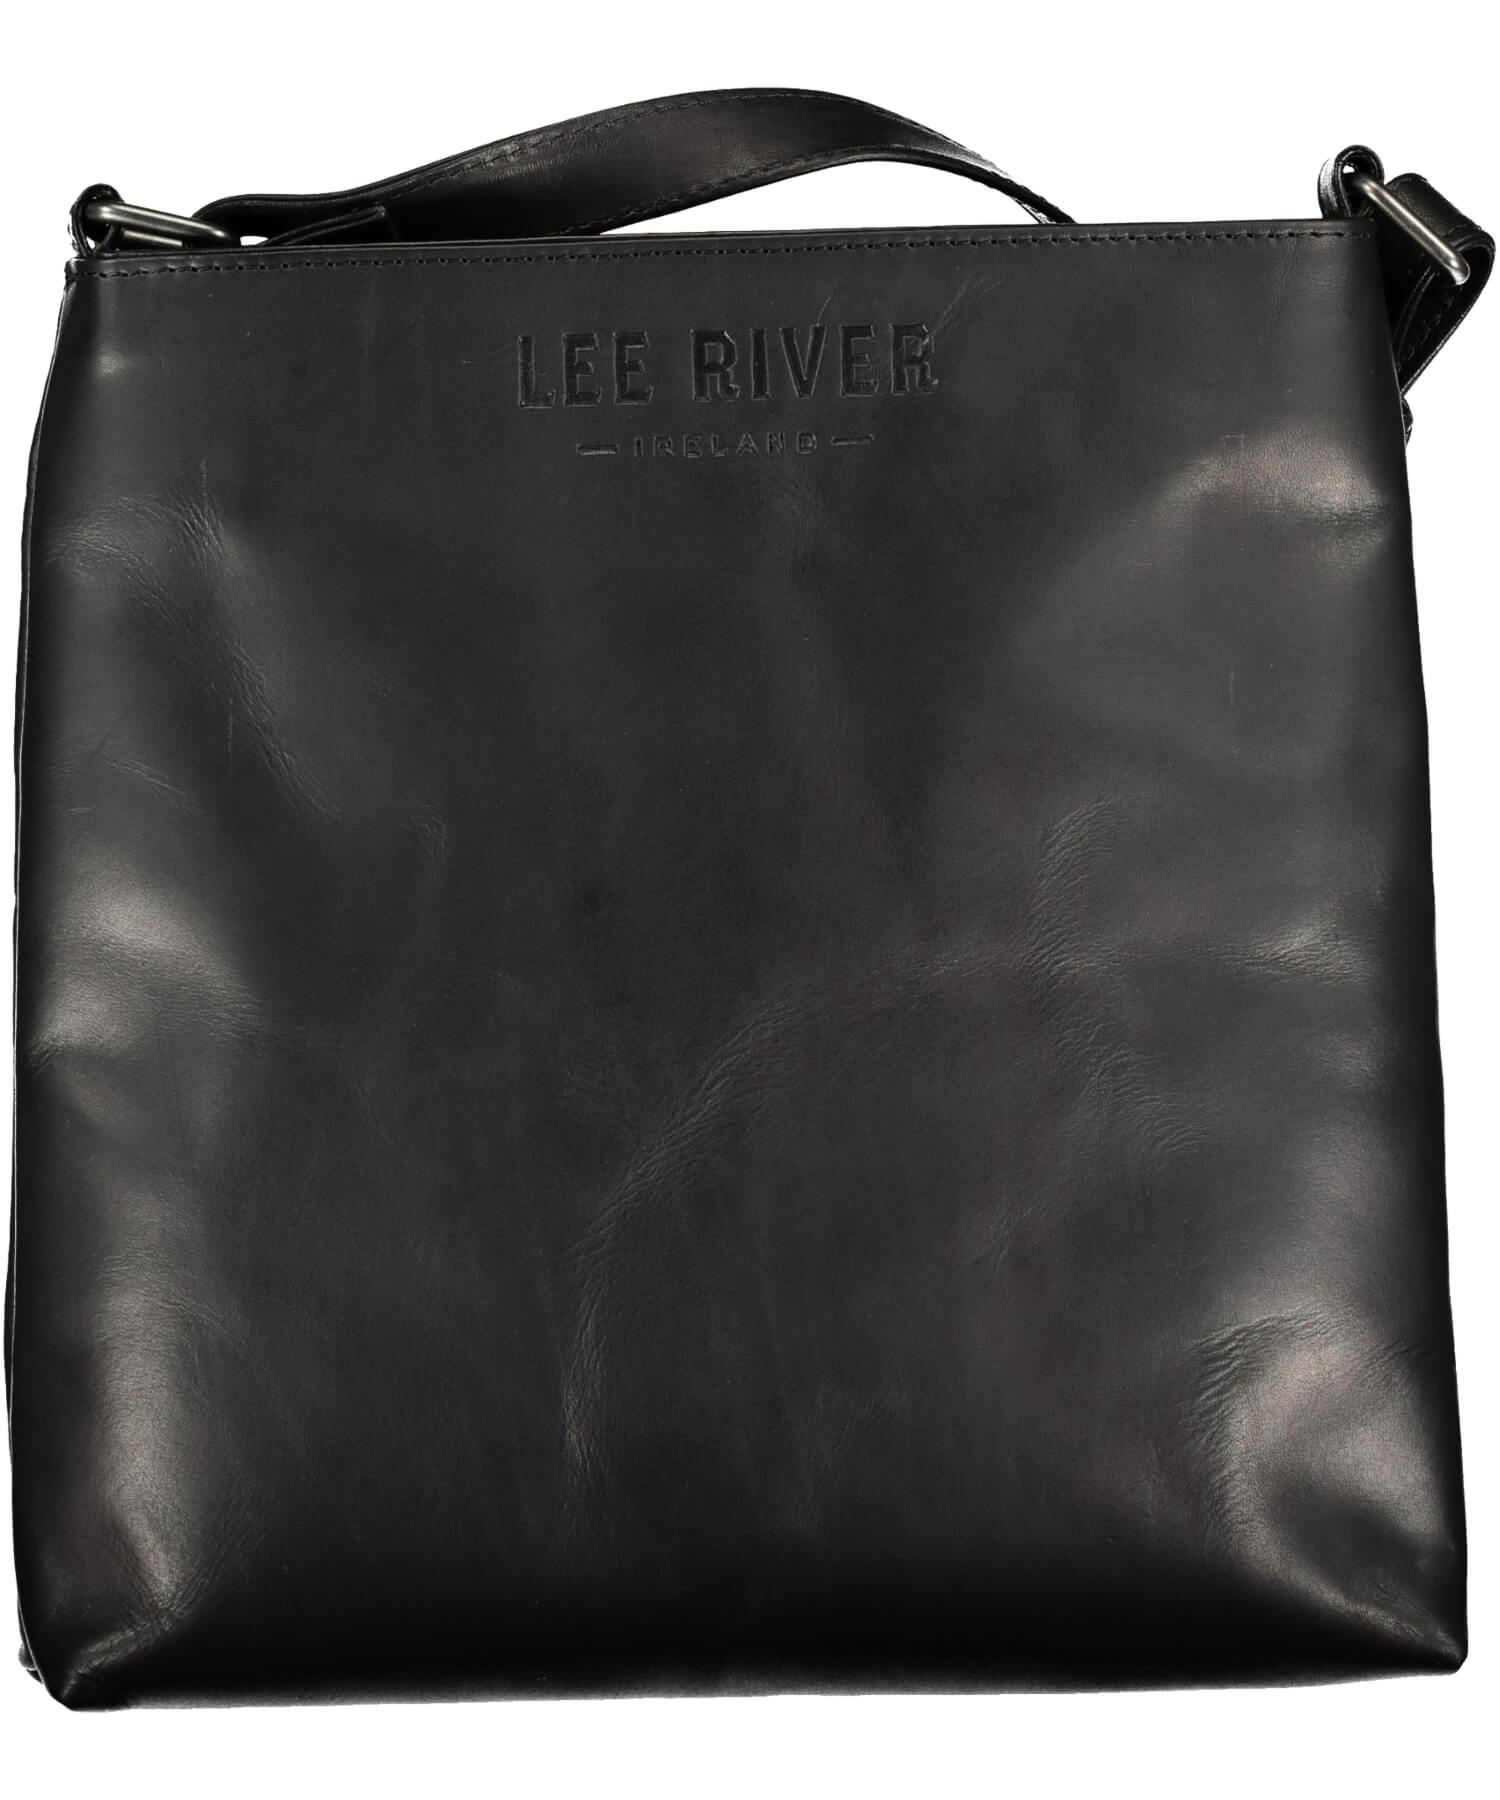 Mary Embossed Day Bag - Black - [Lee River] - Bags, Purses & Wallets - Irish Gifts